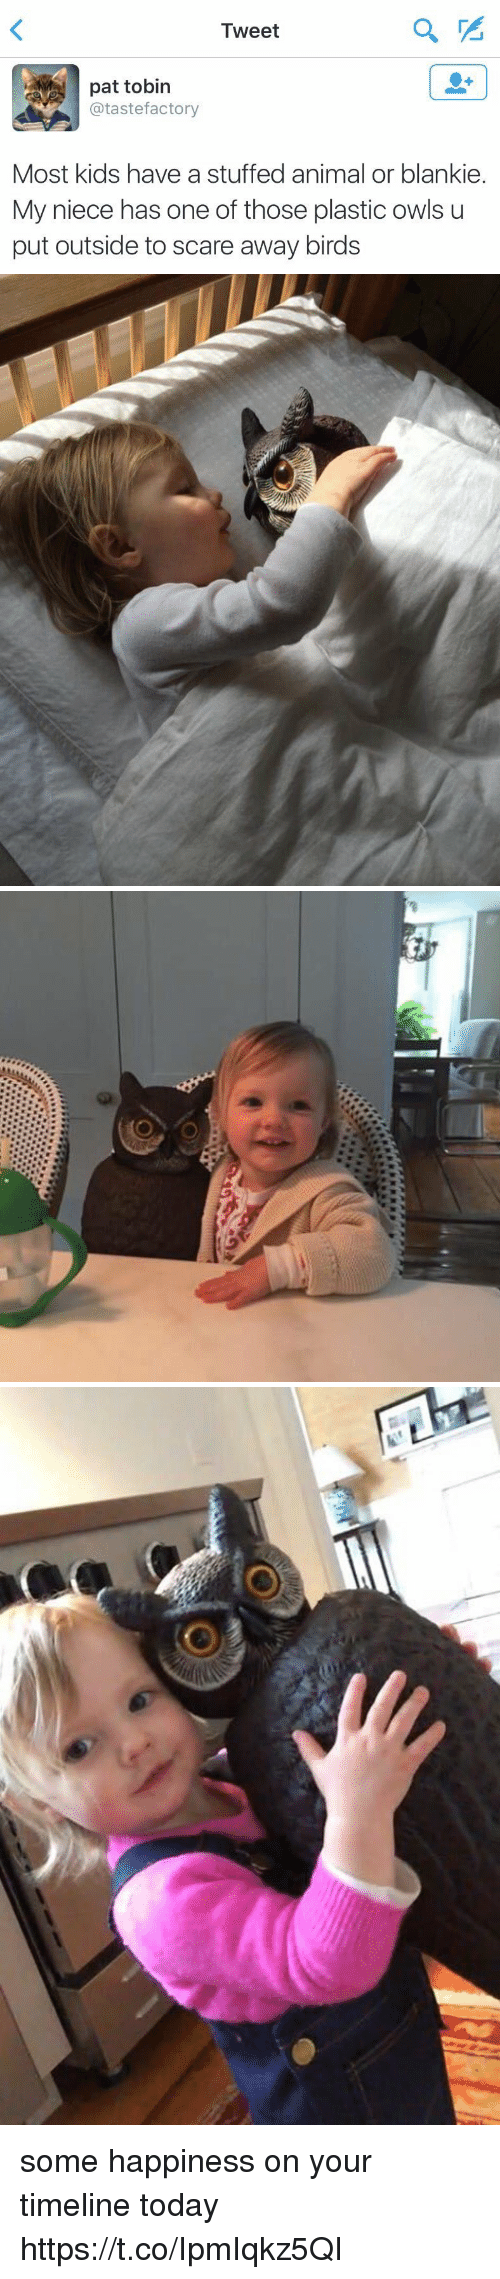 Scare, Animal, and Birds: Tweet  pat tobin  @tastefactory  Most kids have a stuffed animal or blankie.  My niece has one of those plastic owls u  put outside to scare away birds some happiness on your timeline today https://t.co/IpmIqkz5QI